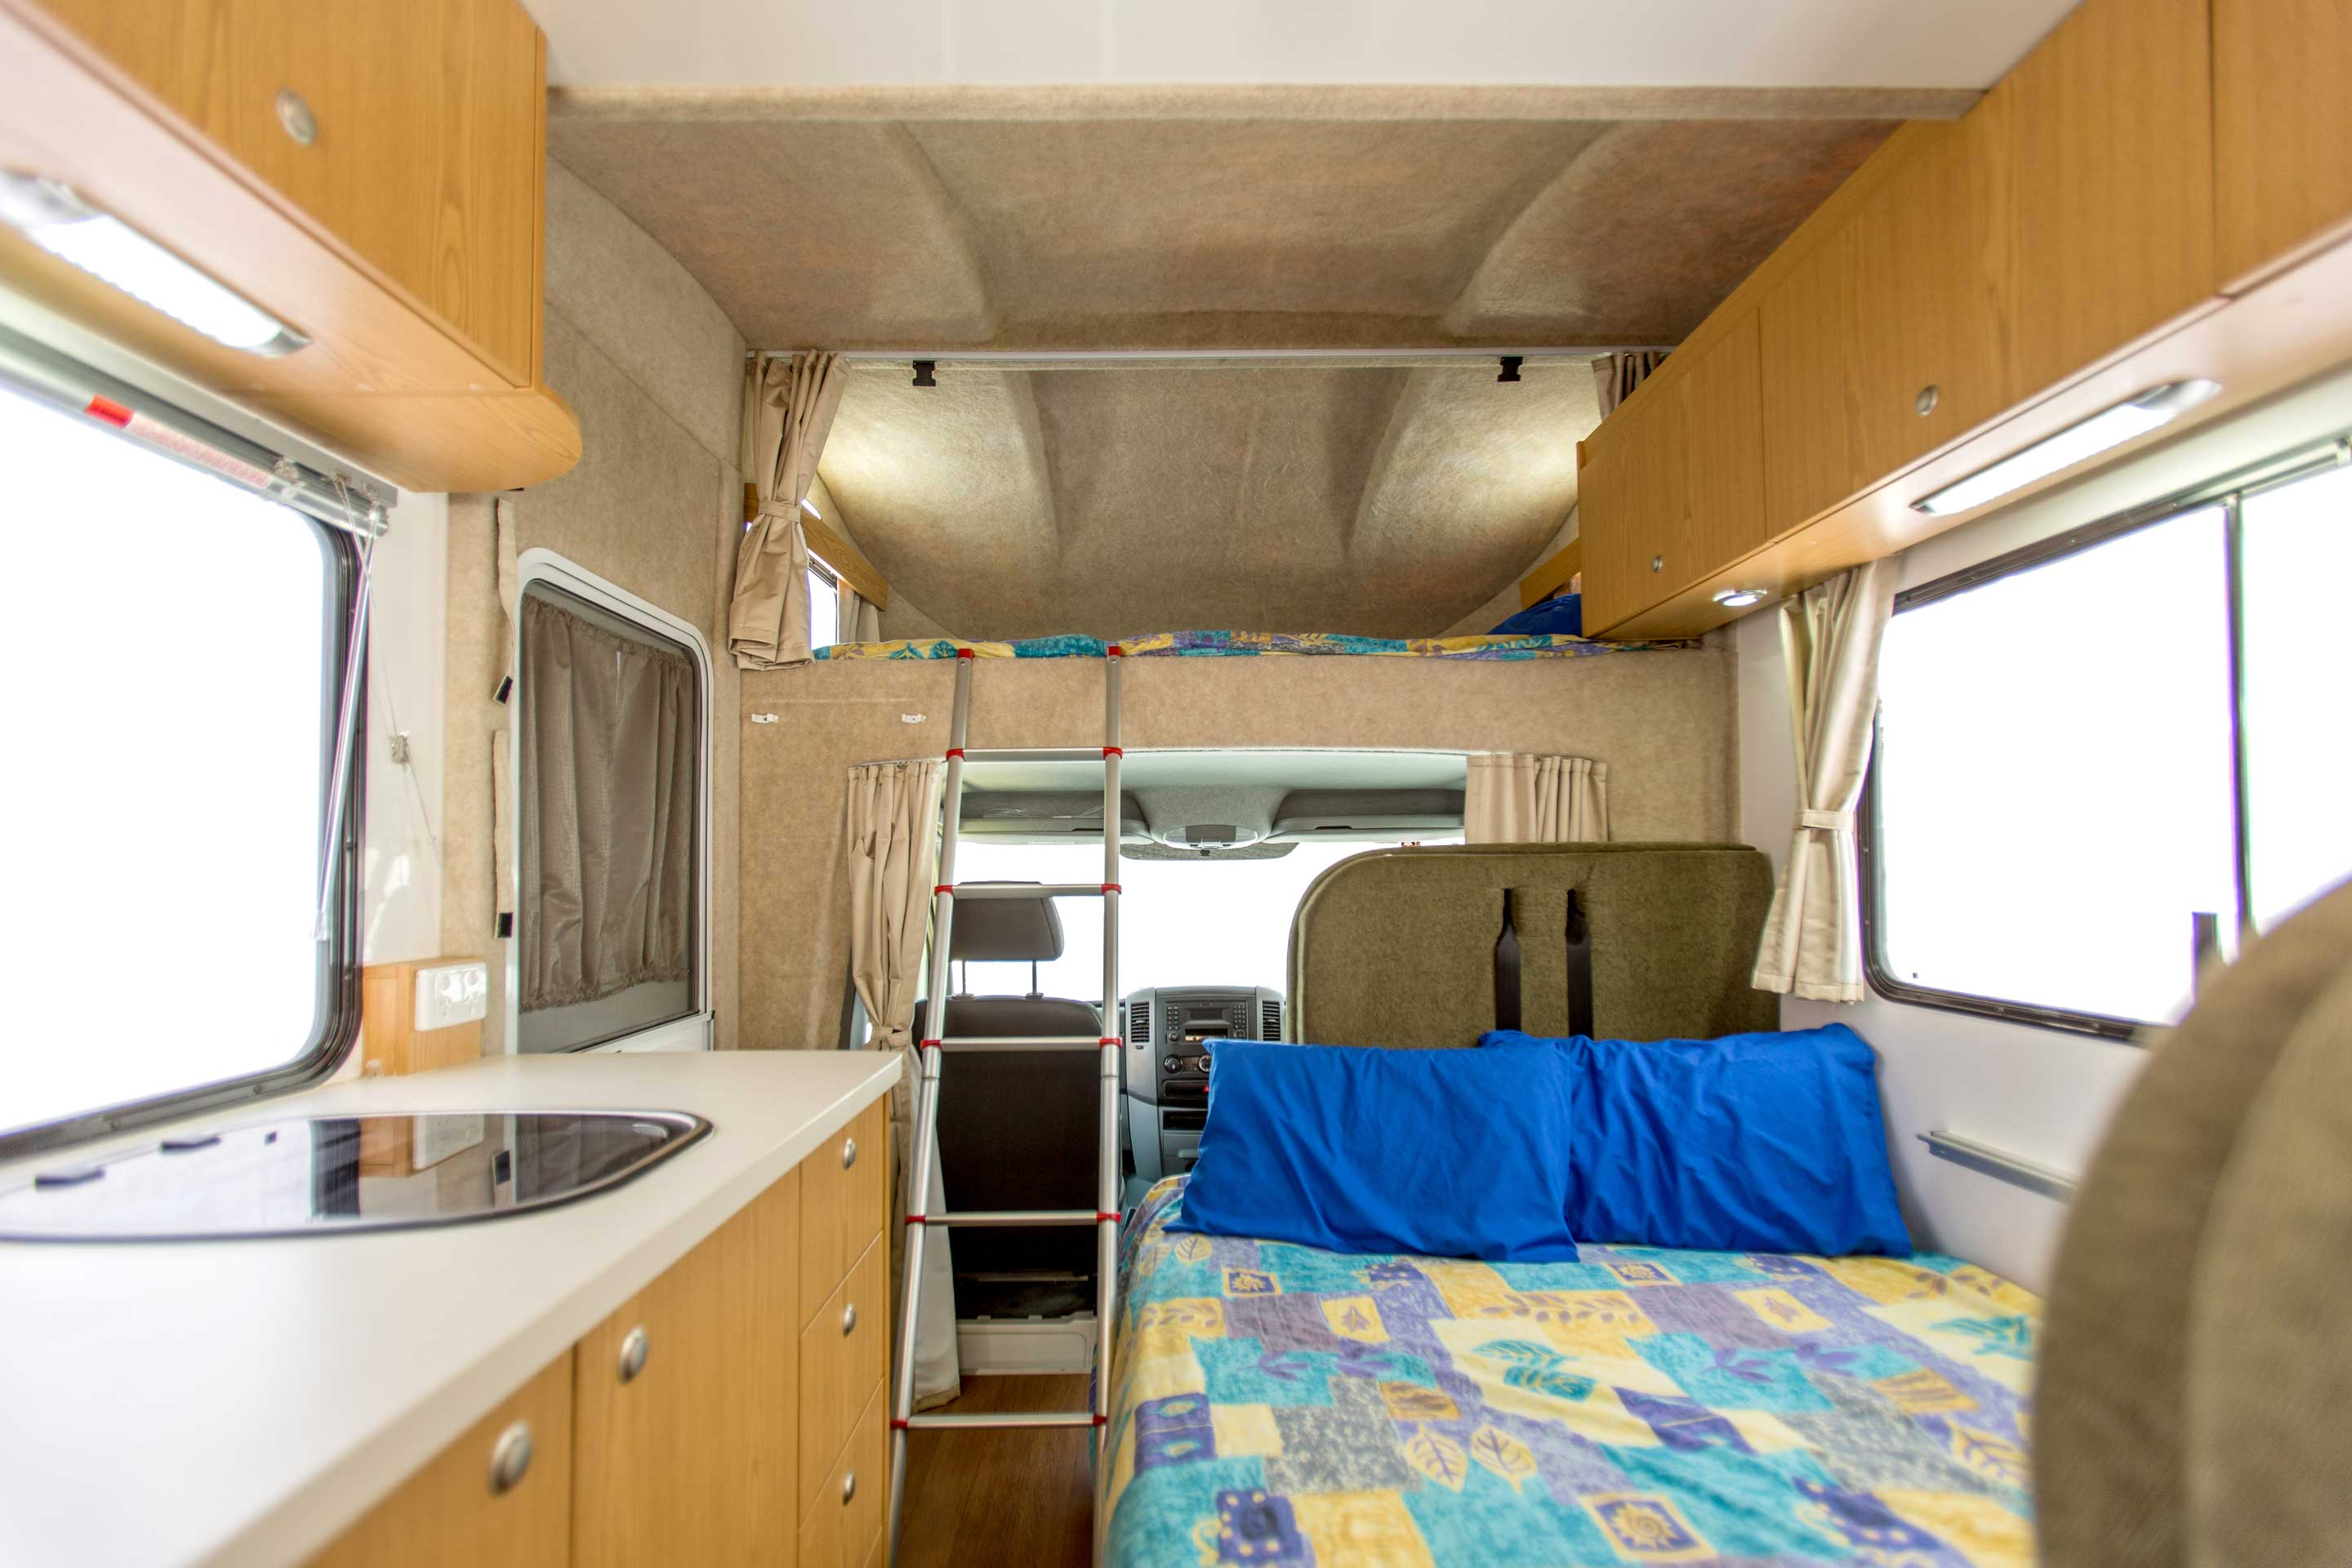 969e782c2c Apollo Motorhomes NZ International 6 Berth Euro Deluxe campervan hire new  zealand. click here for larger image